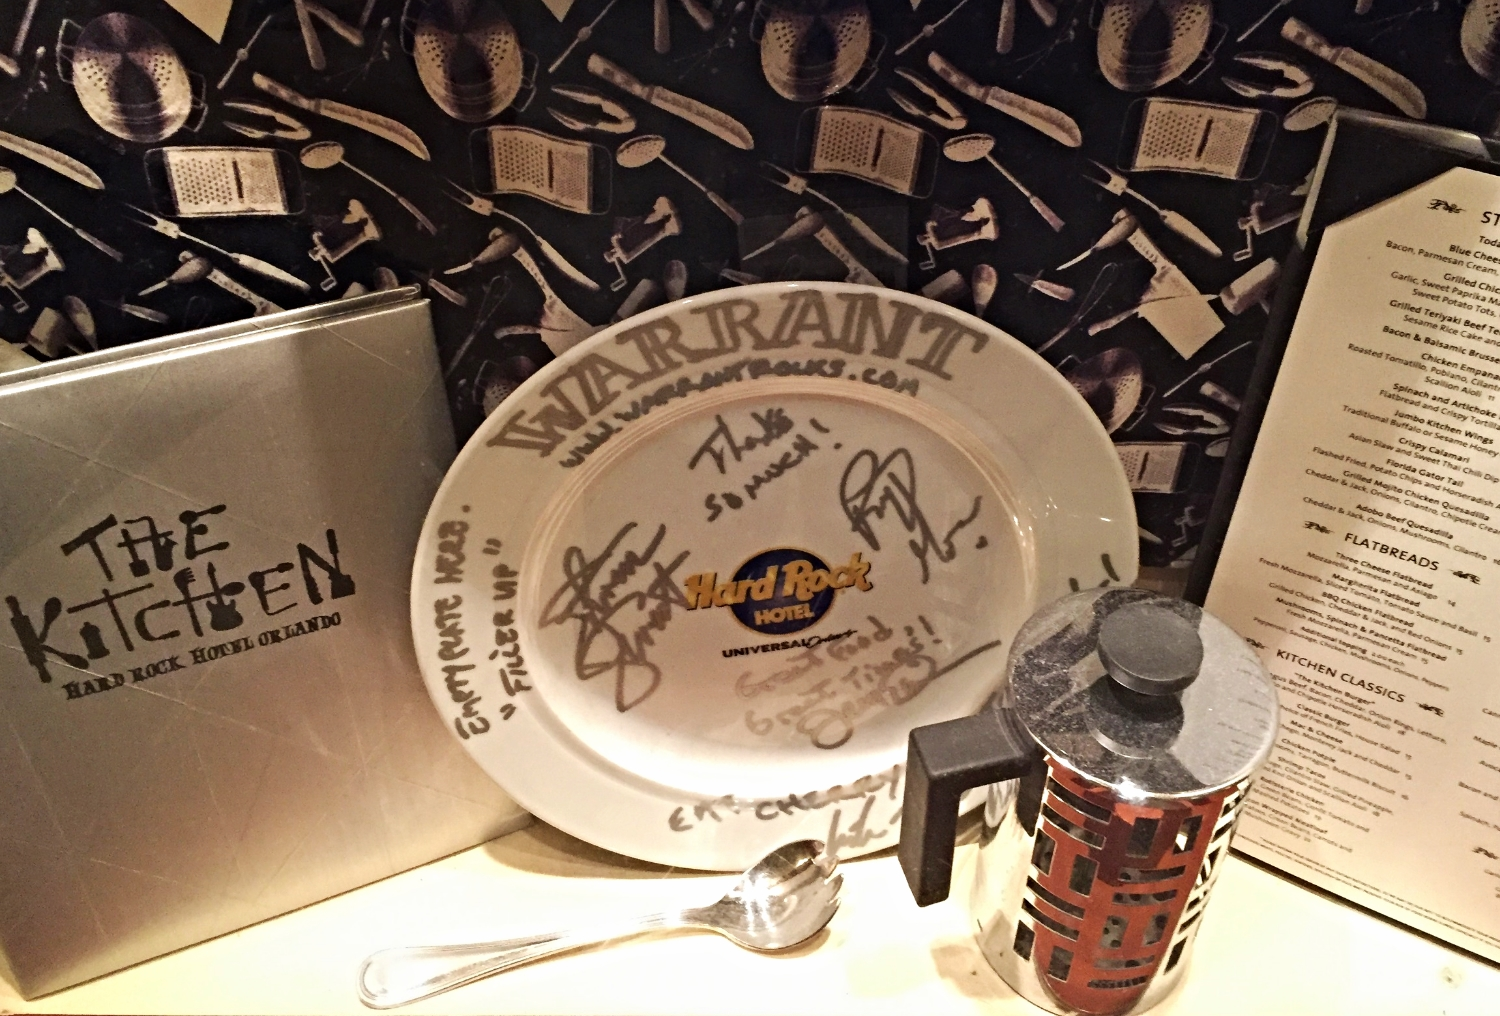 Warrant Memorabilia at The Kitchen in Hard Rock Hotel Orlando